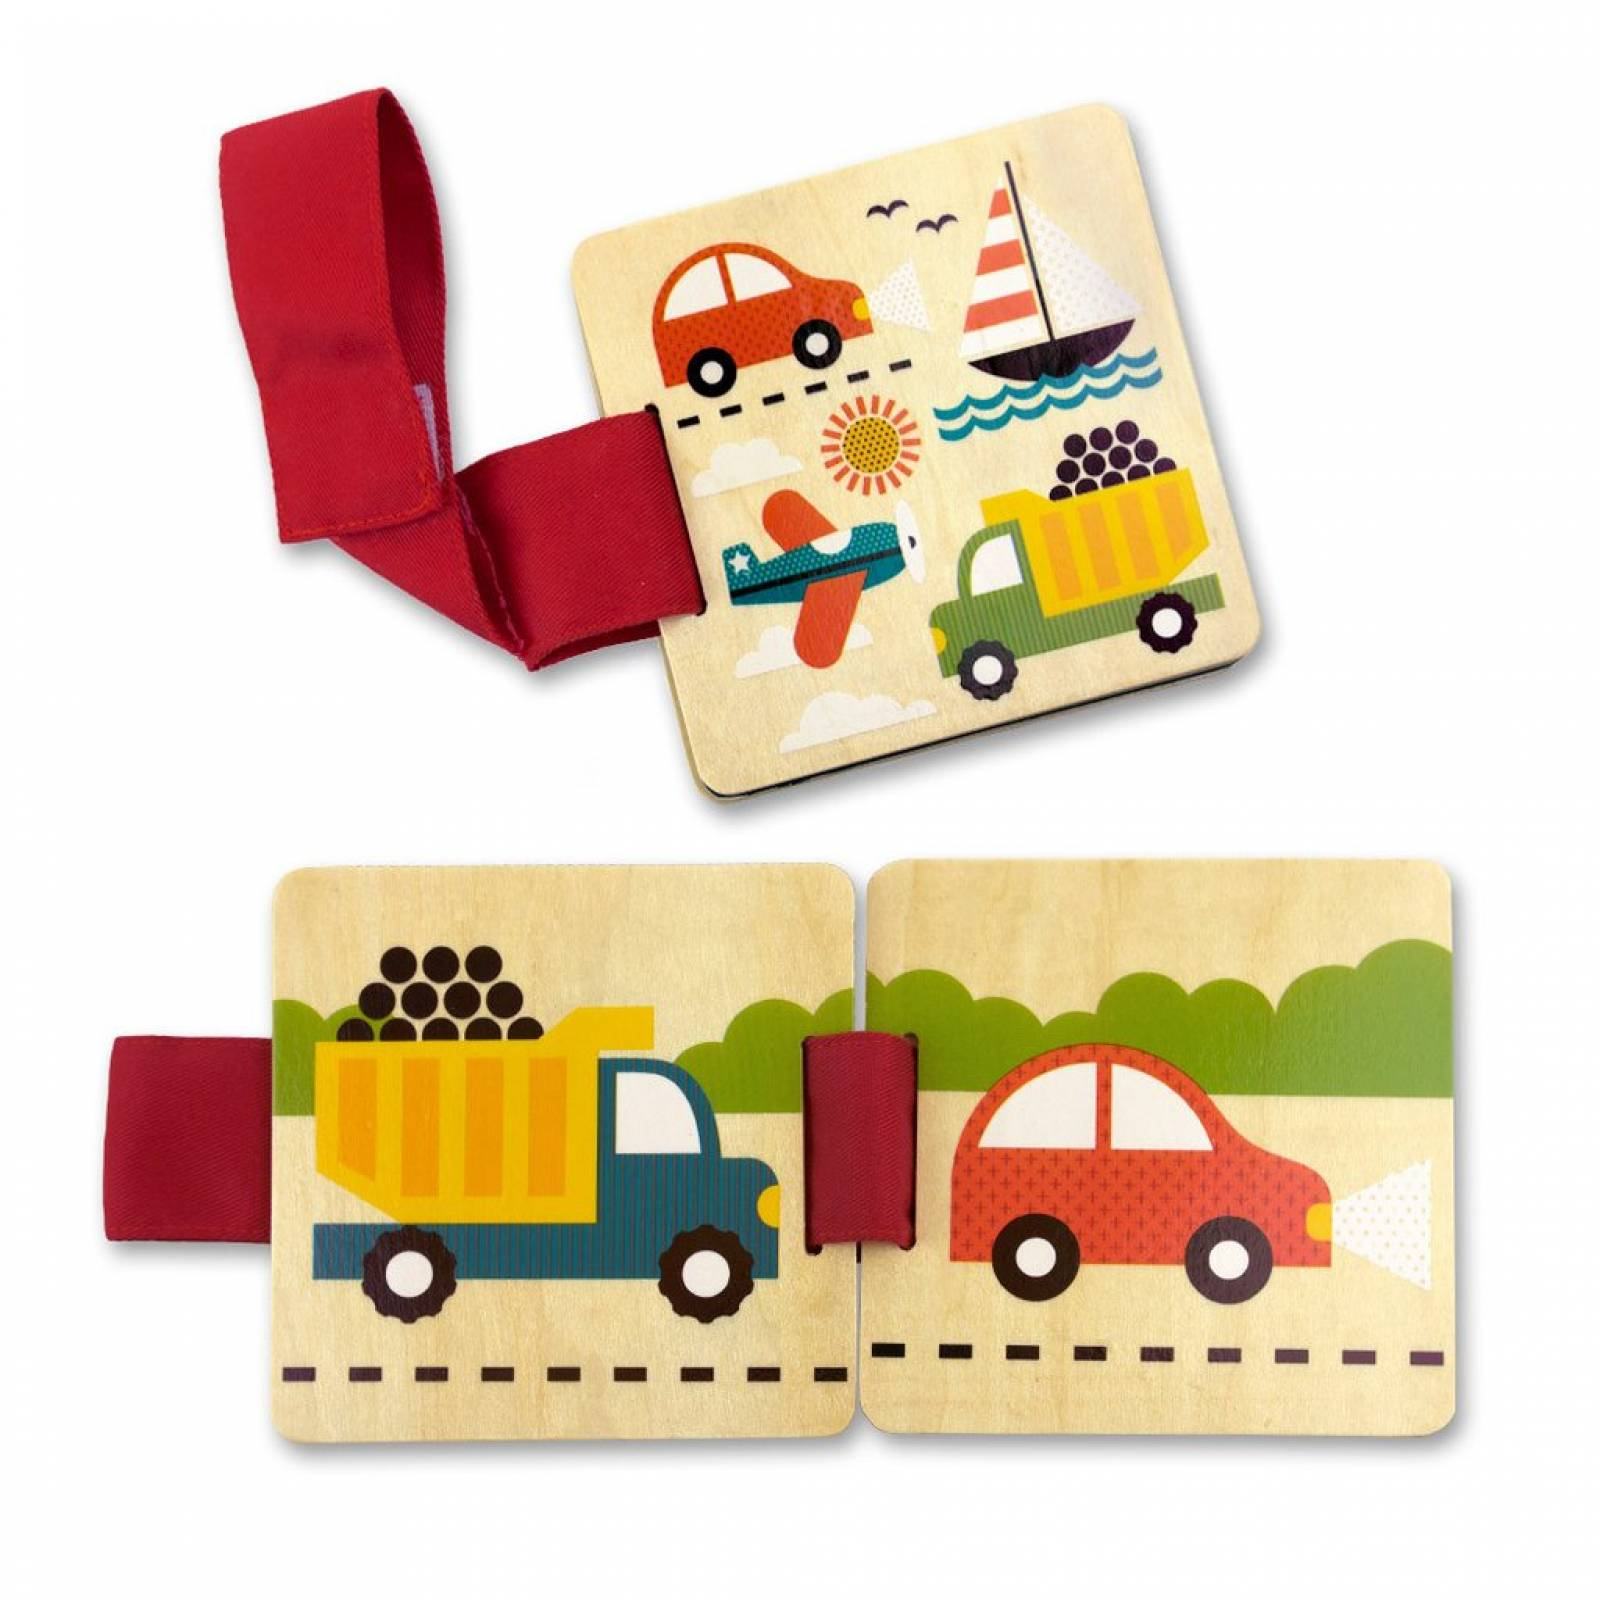 Things That Go Wooden Stroller Buggy Book by Petit Collage 6m+ thumbnails